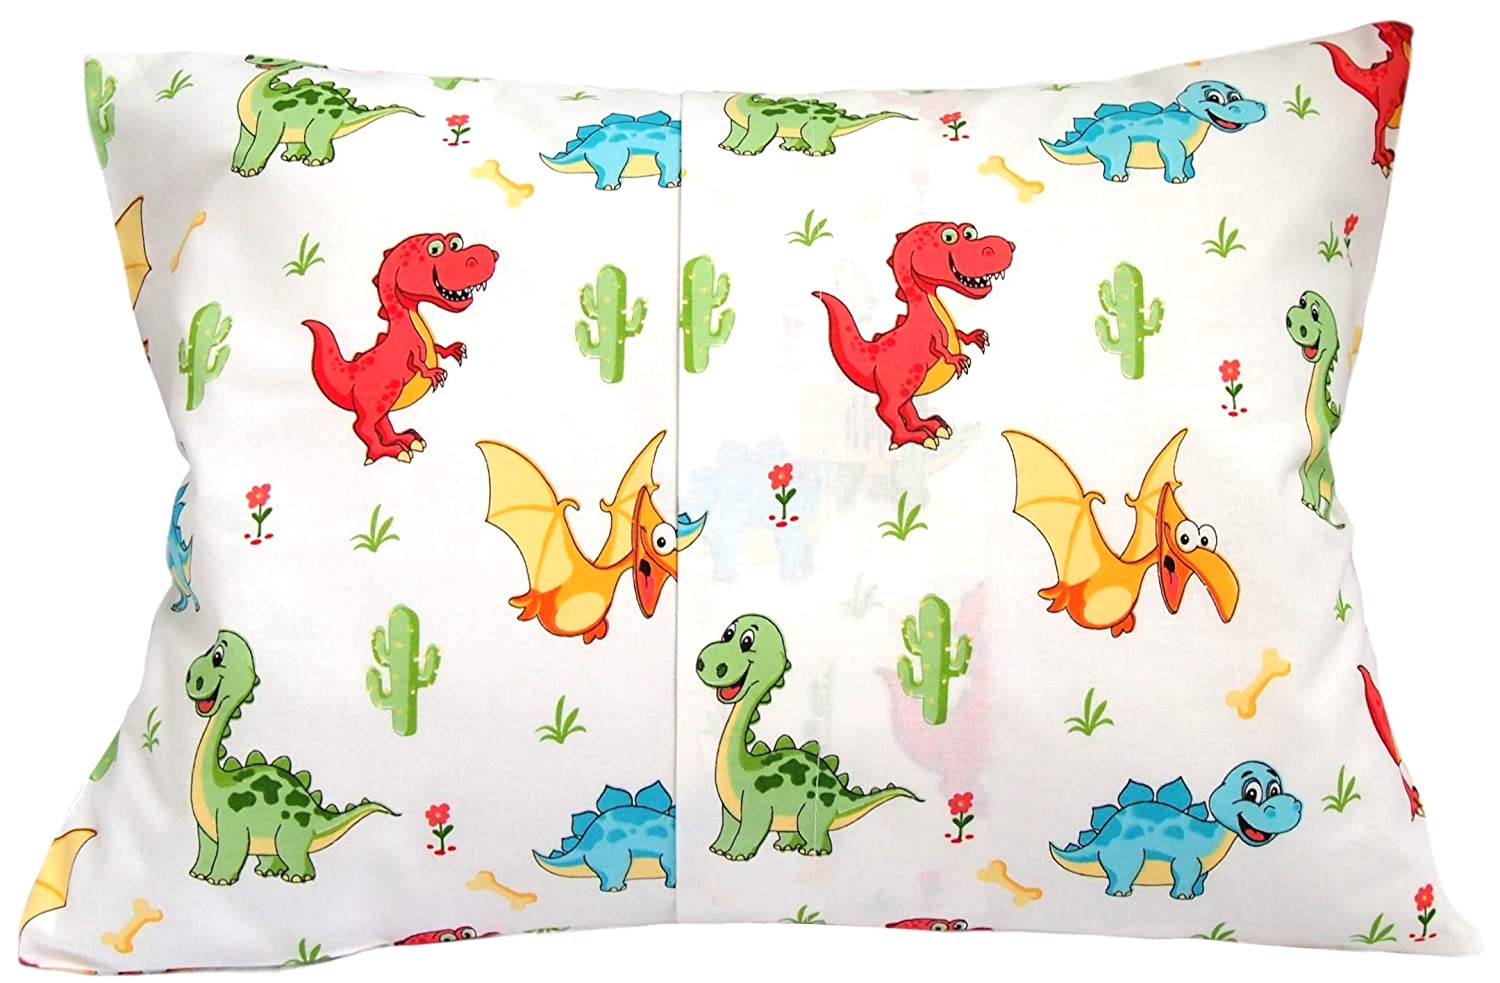 100/% Cotton Horses Toy with Blue Kids Toddler Pillowcase 13x18 by Comfy Turtles or Get Your Kid/'s Smile with Cute Animals of This Soft Pillow Cover for Boys and Girls